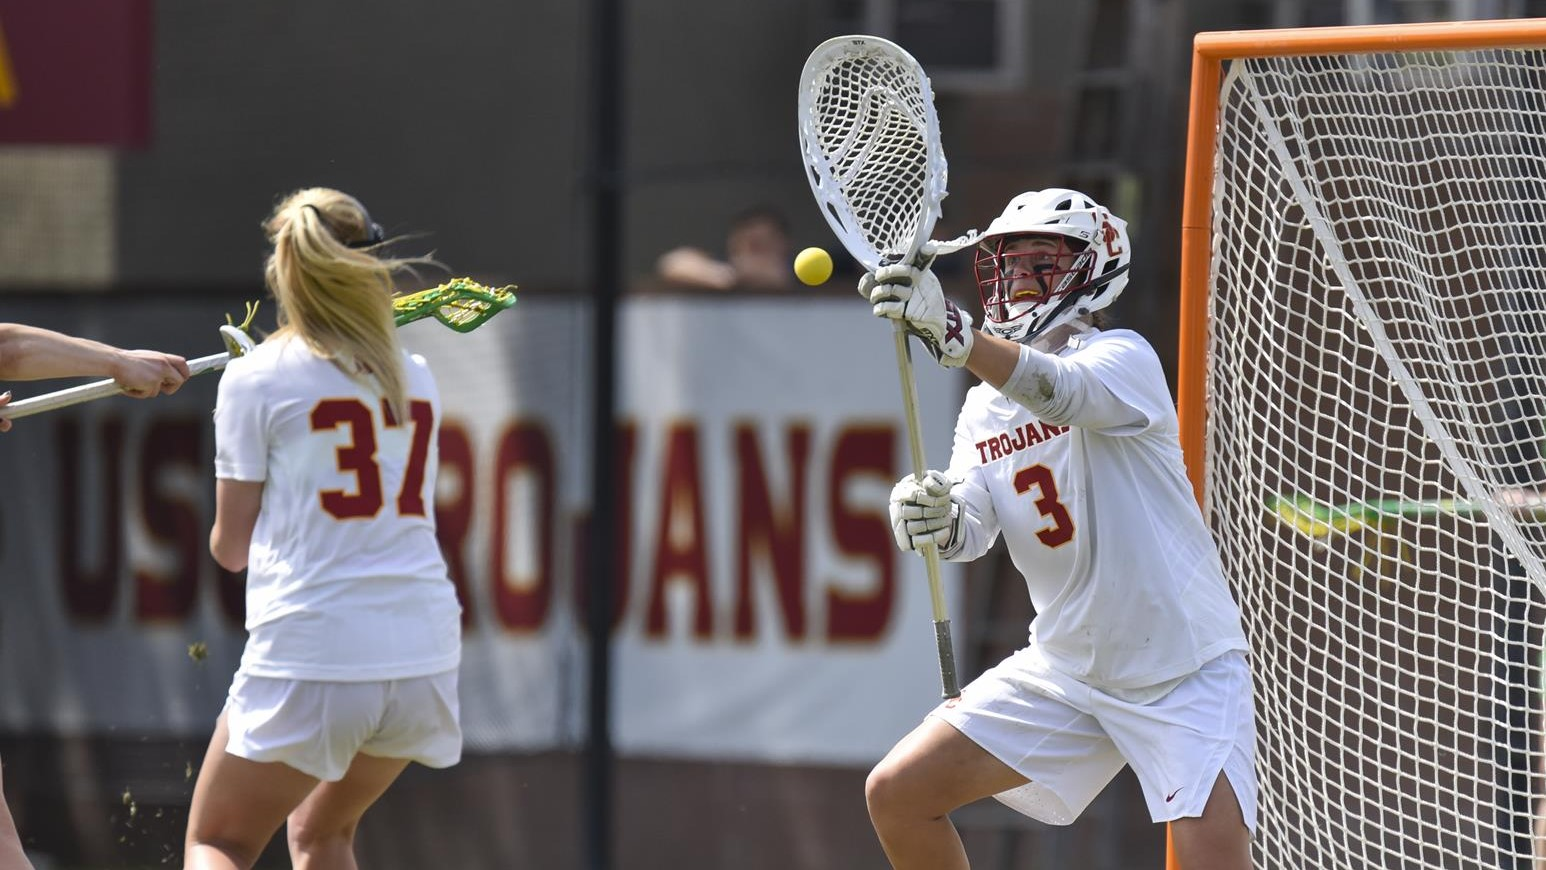 Gussie Johns - 2018 USC Lacrosse Roster - University of Southern ...